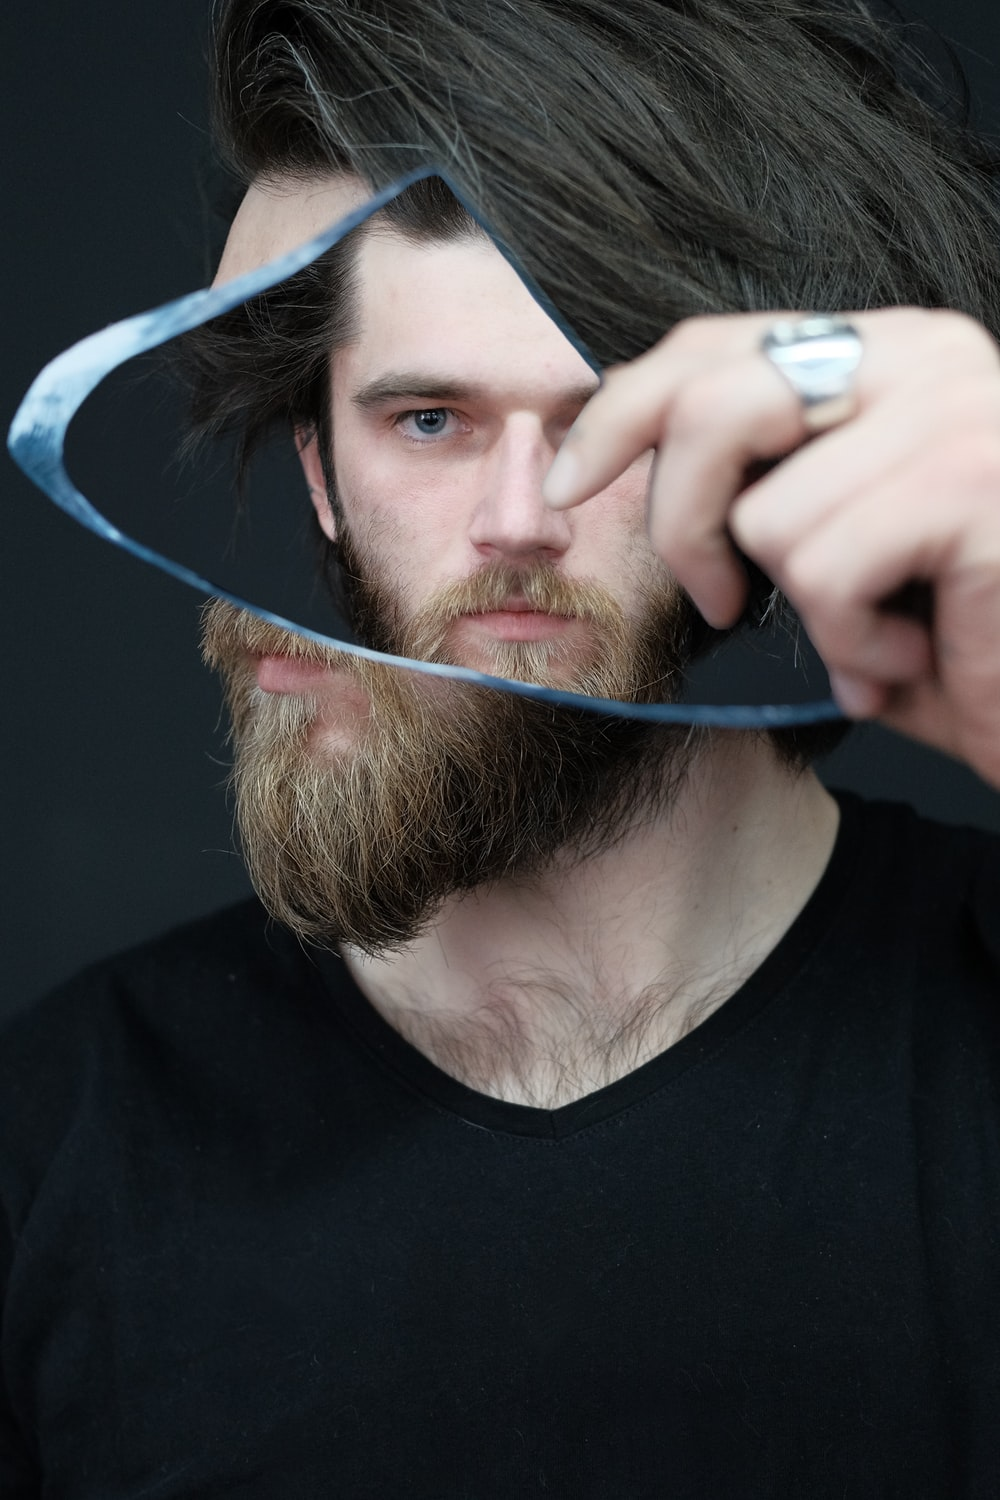 man in black crew neck shirt holding blue coated wire